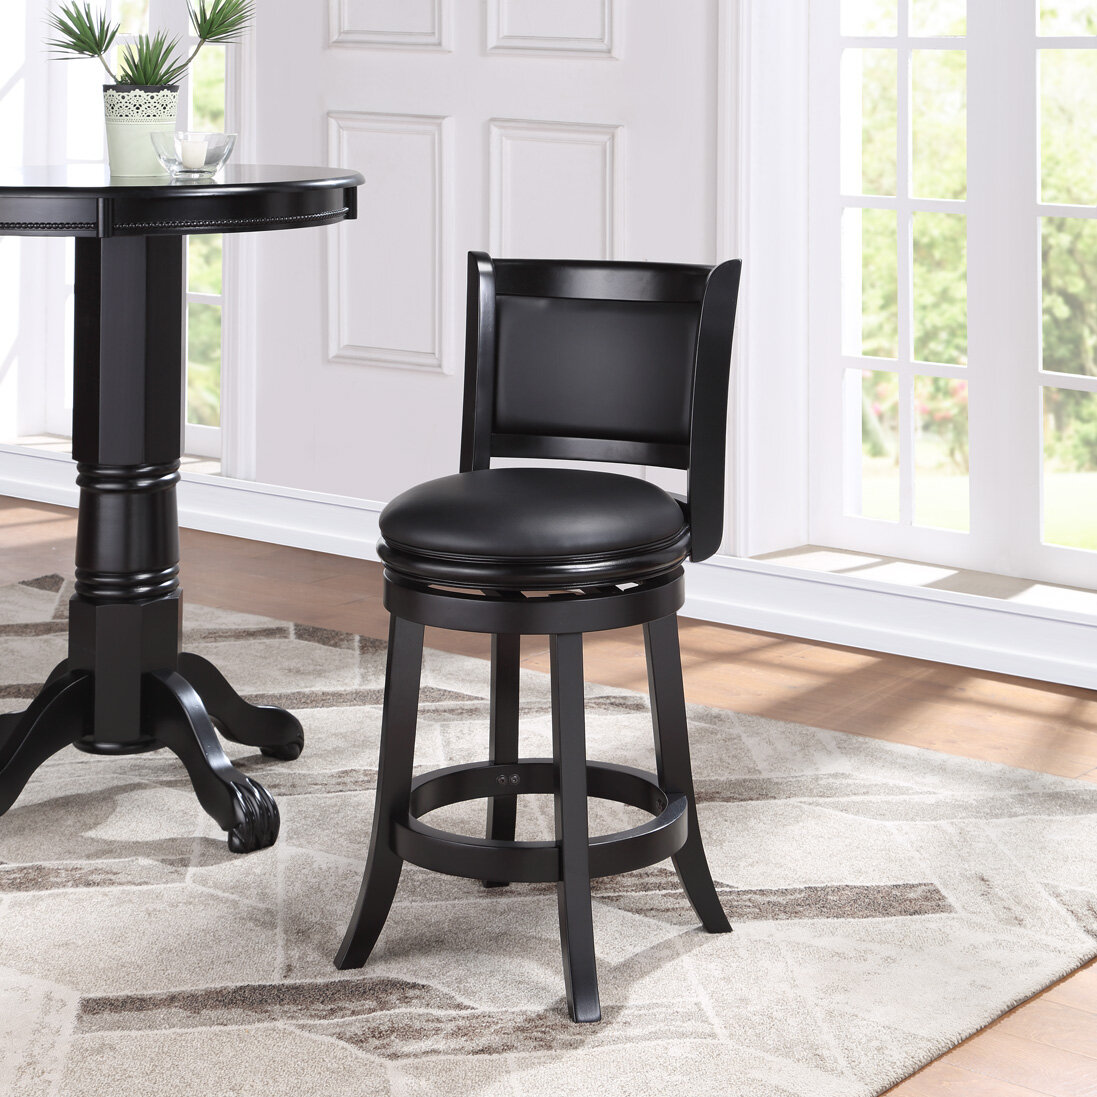 Counter 24 27 Full Back Bar Stools Counter Stools You Ll Love In 2021 Wayfair